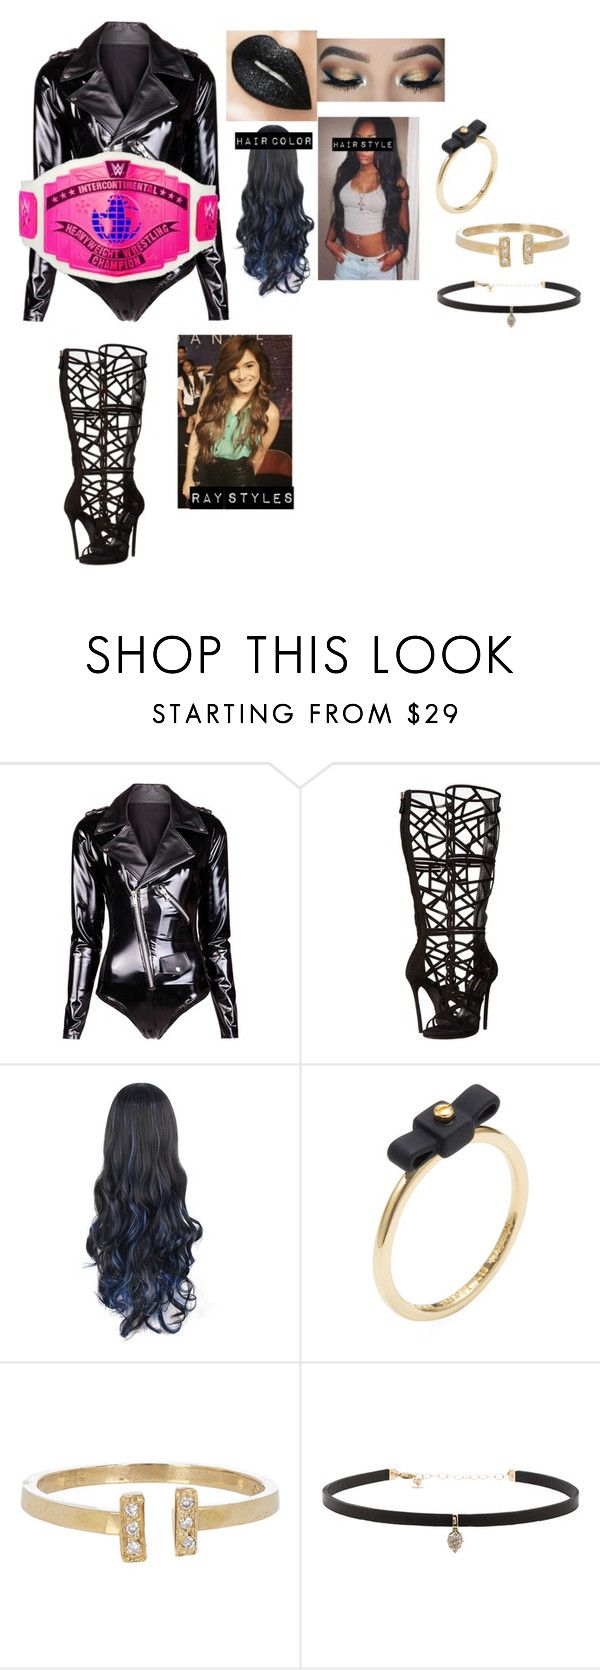 """""""Ray styles- ringside for Dolph Ziggler 'Dolph Ziggler Vs The Miz"""" by princess-nikki123 ❤ liked on Polyvore featuring Dsquared2, Glit, Marc by Marc Jacobs, Loren Stewart and Carbon & Hyde"""